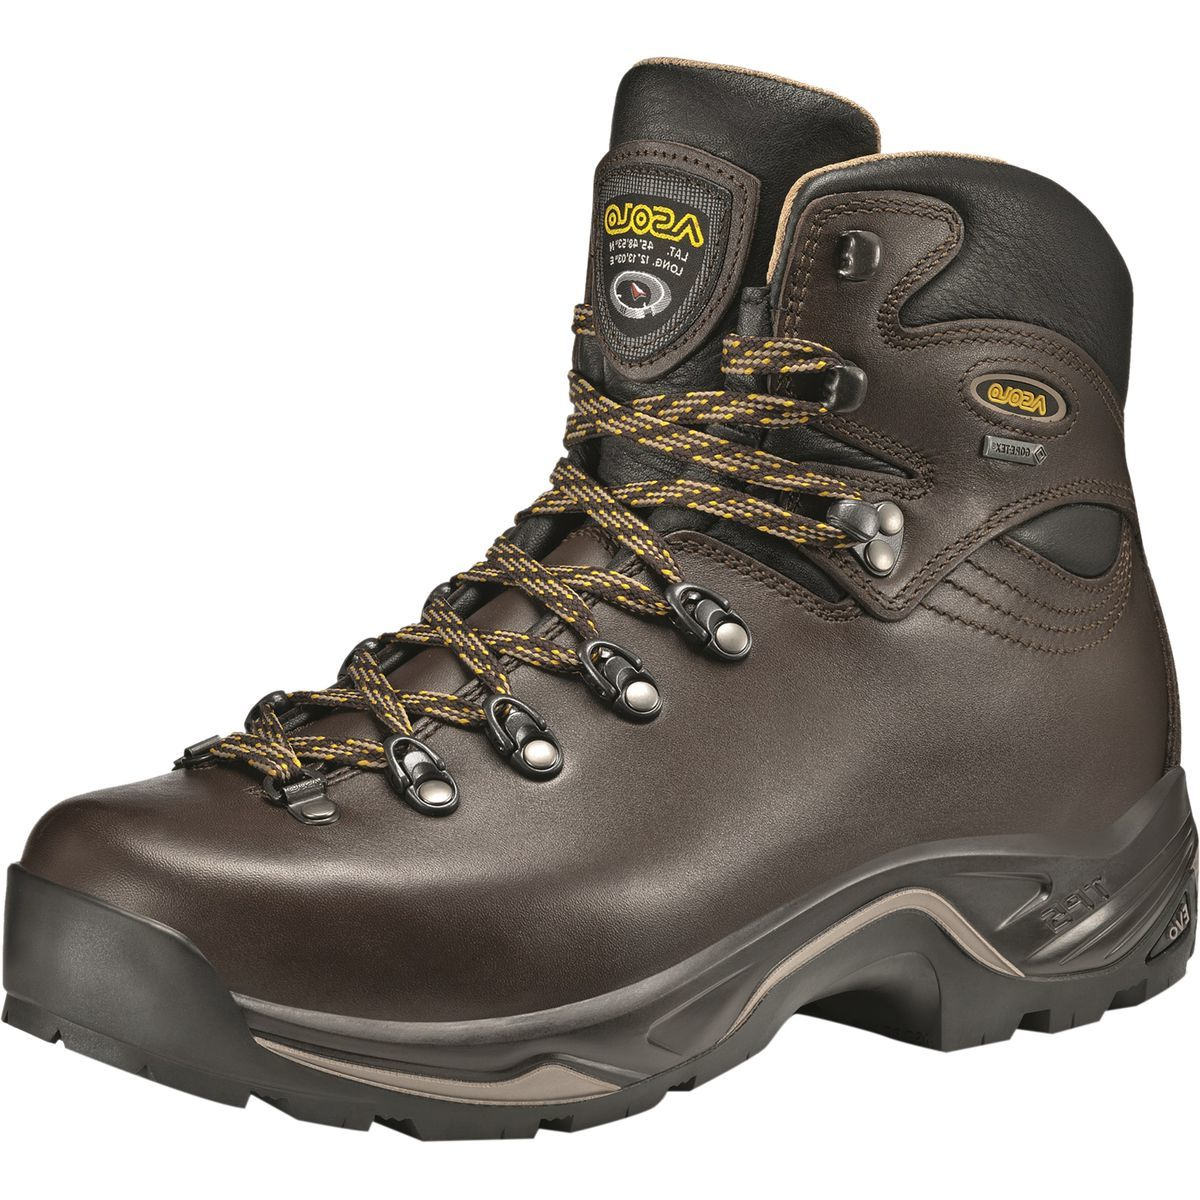 Asolo TPS 520 GV Evo Backpacking Boot - Men's